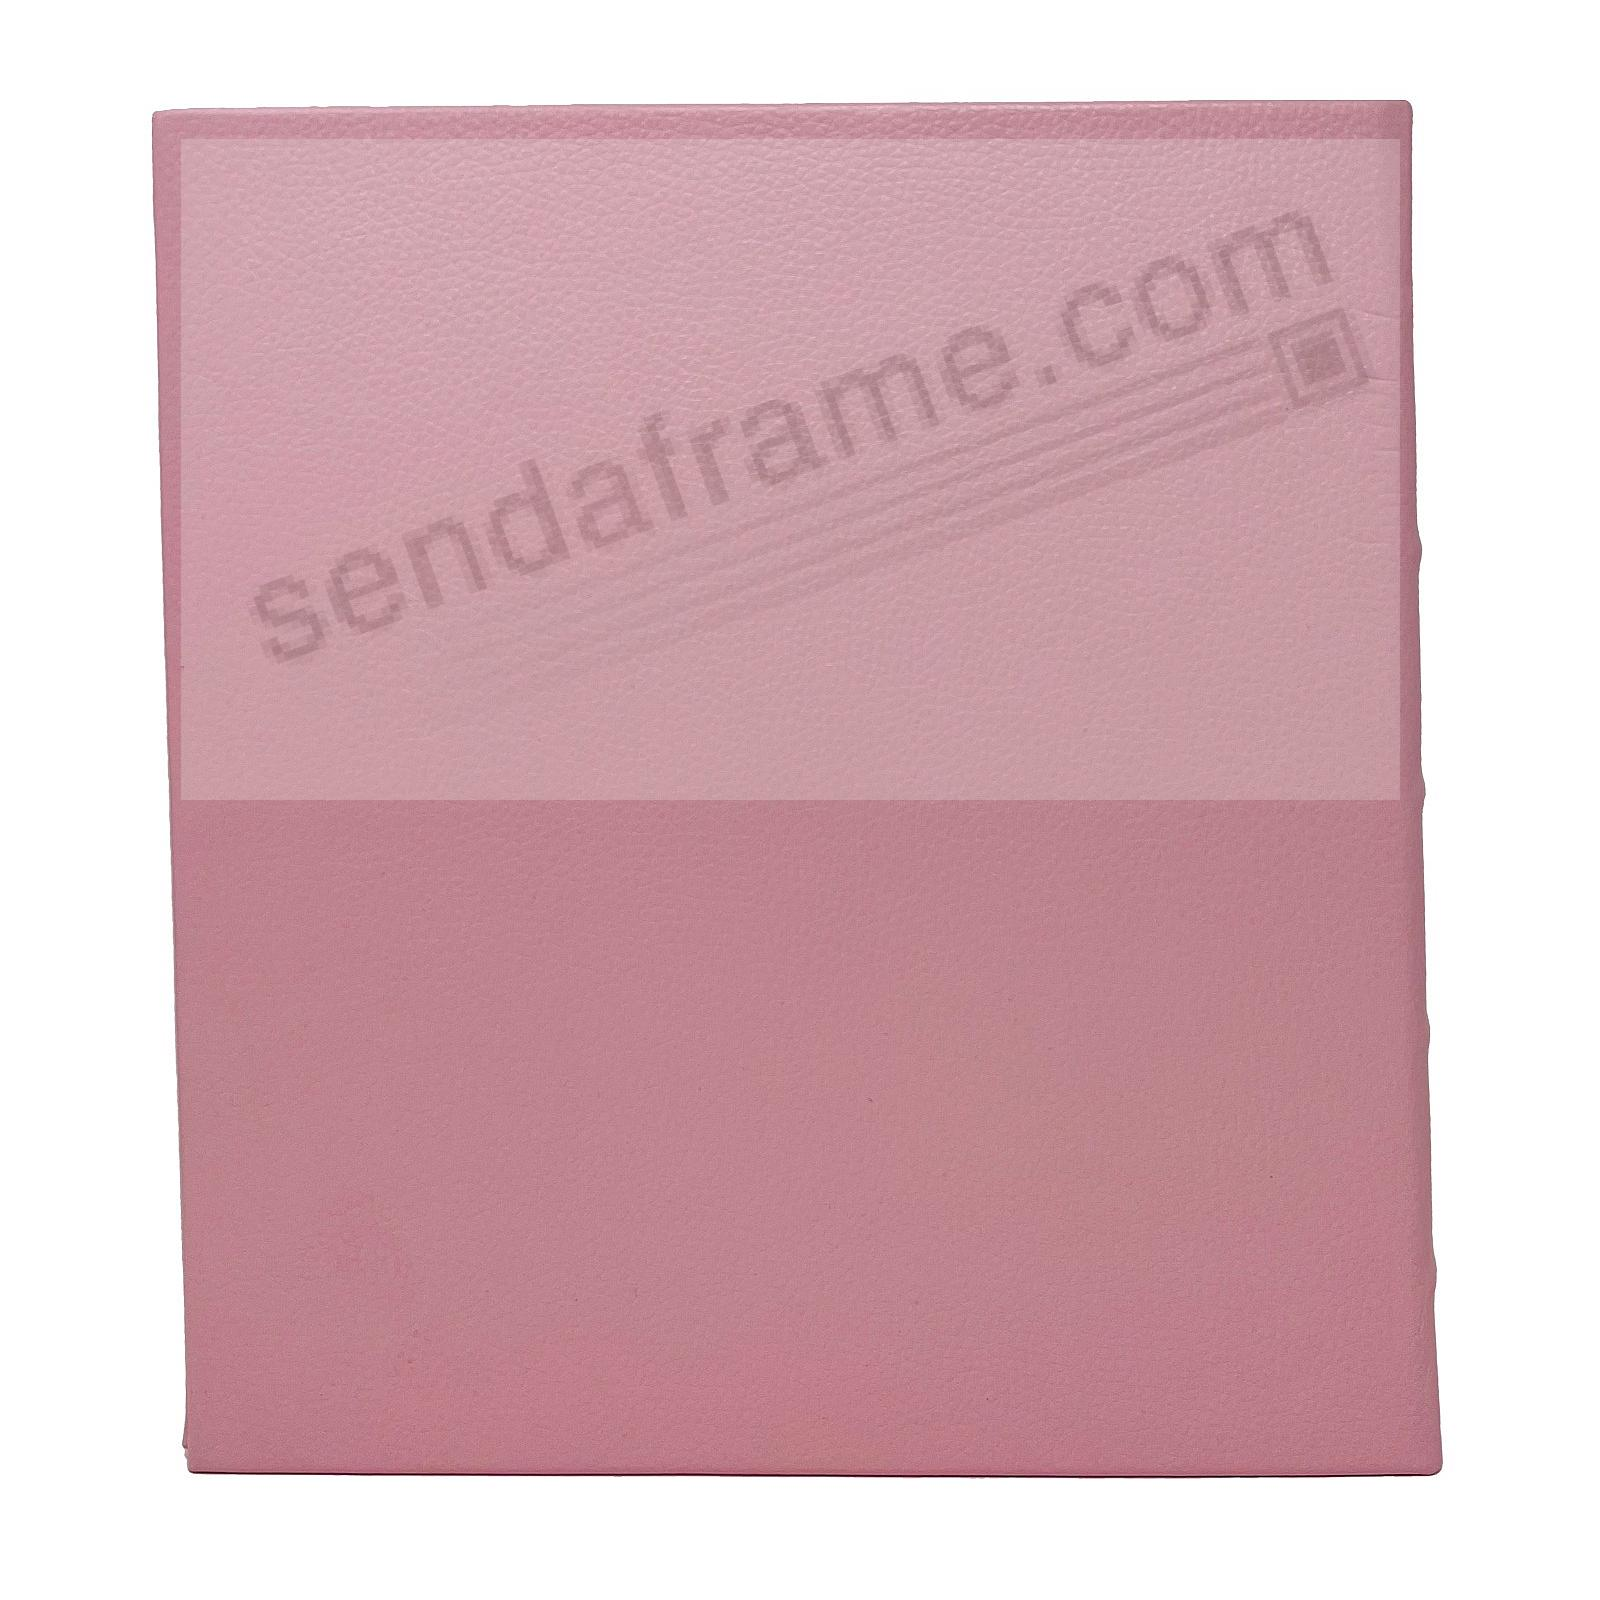 Standard 3-ring Baby-Pink eco-leather album (unfilled) by Graphic Image™